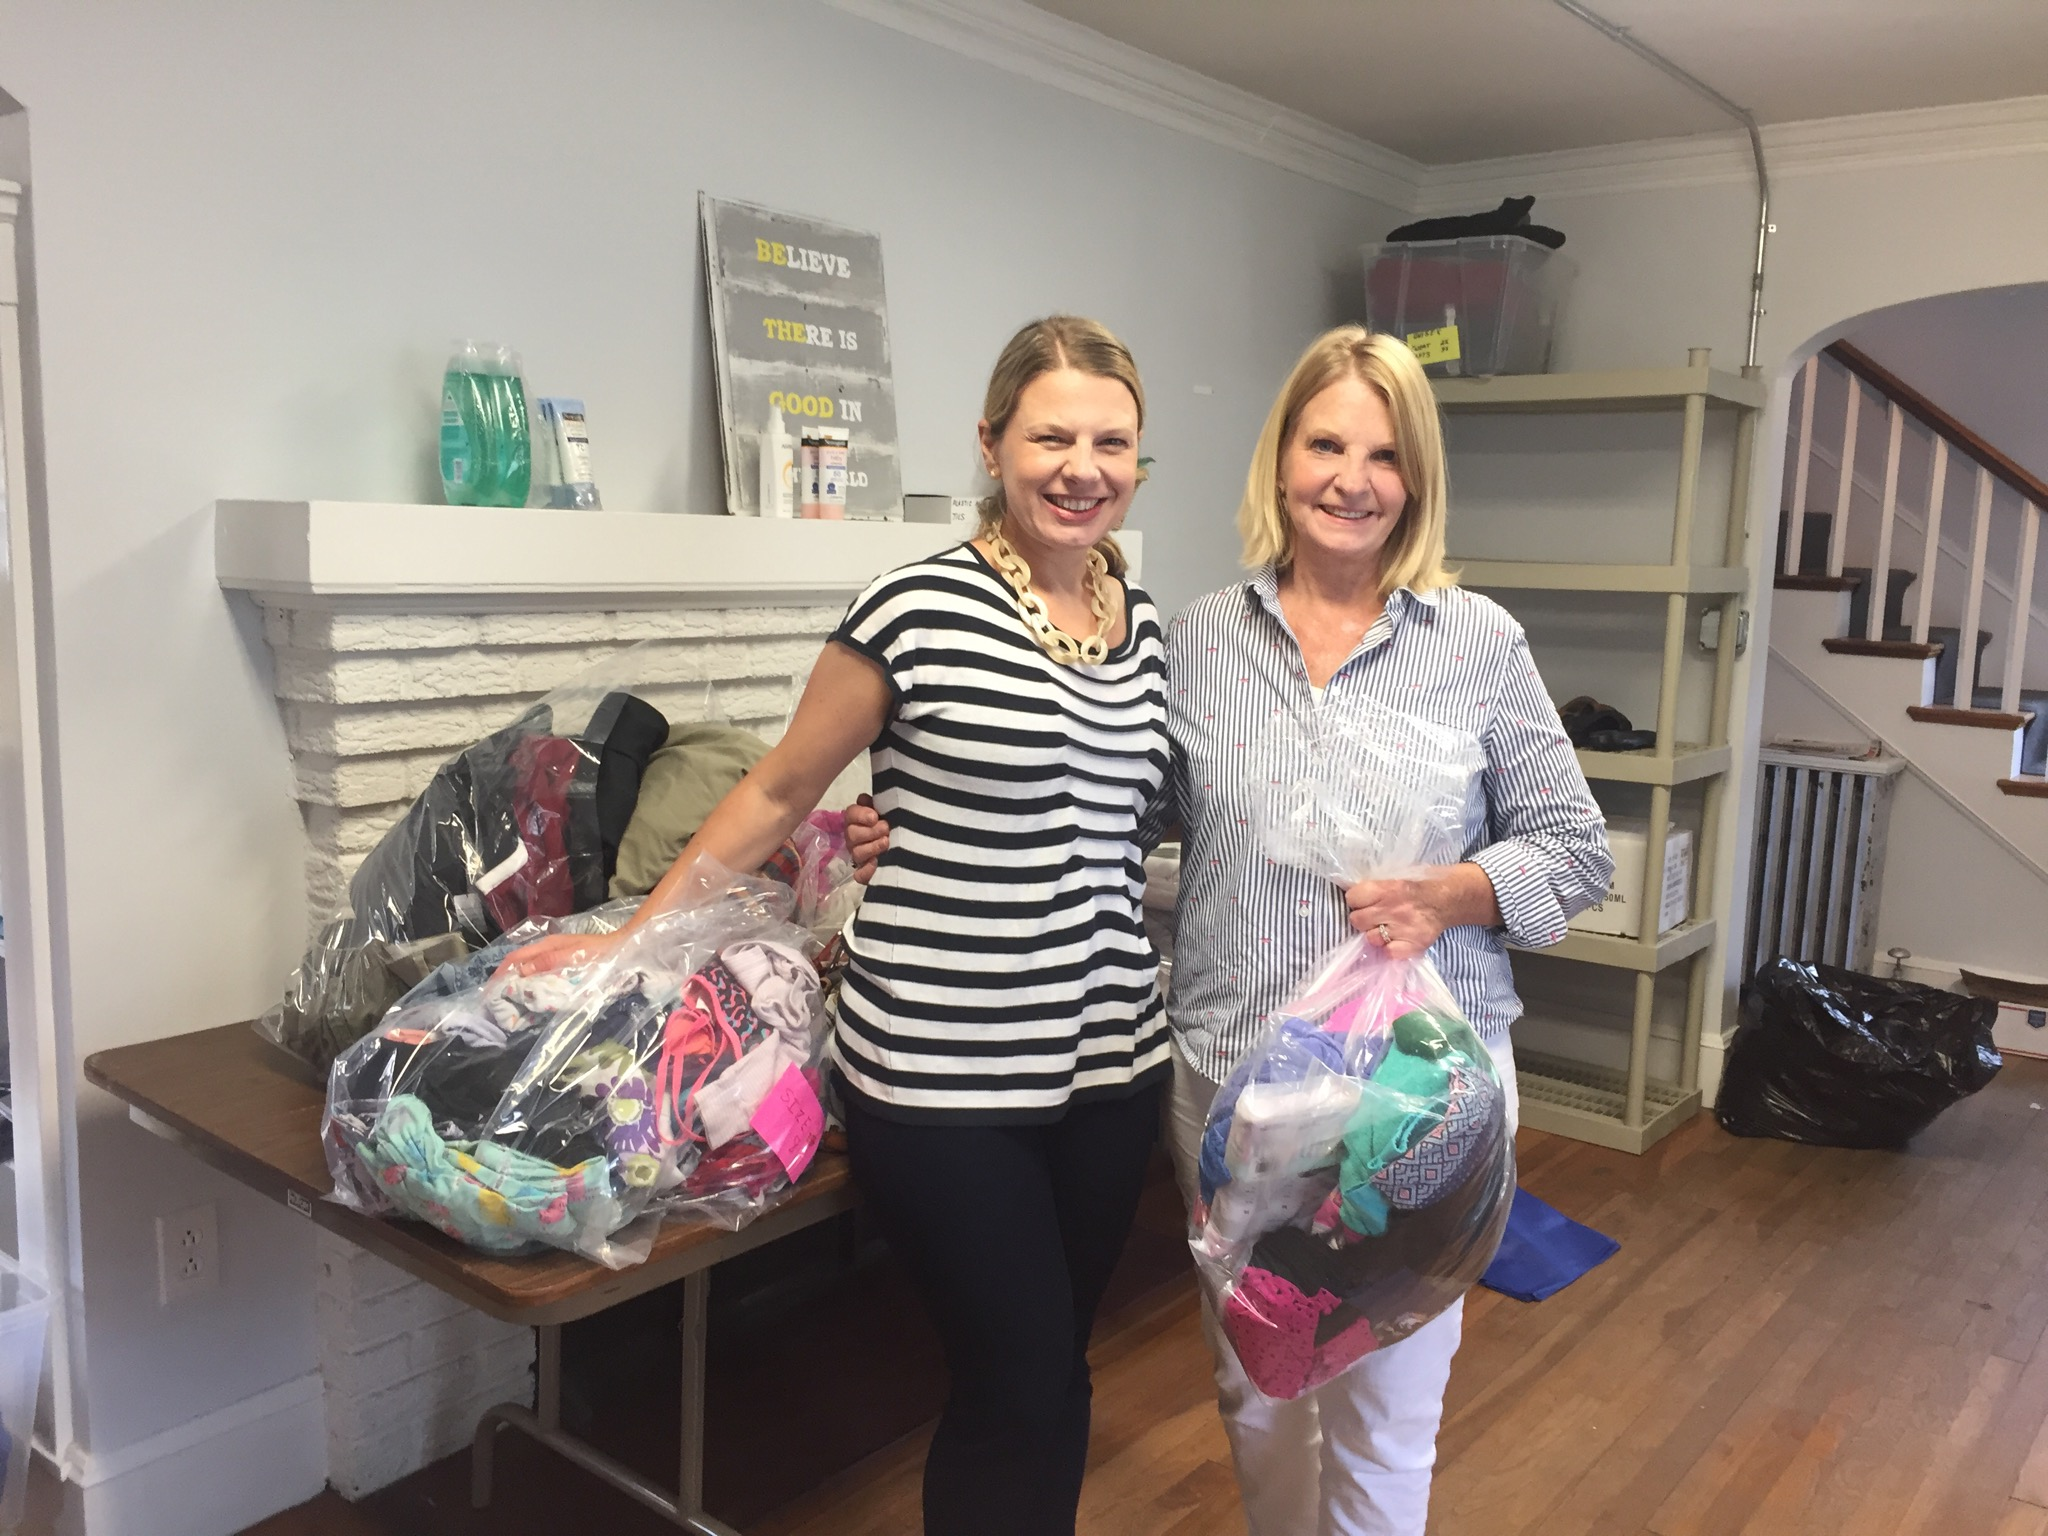 COH Board Member Sarah Hart and her mother, Sue, packaging clothing for two families who lost everything in a recent house fire